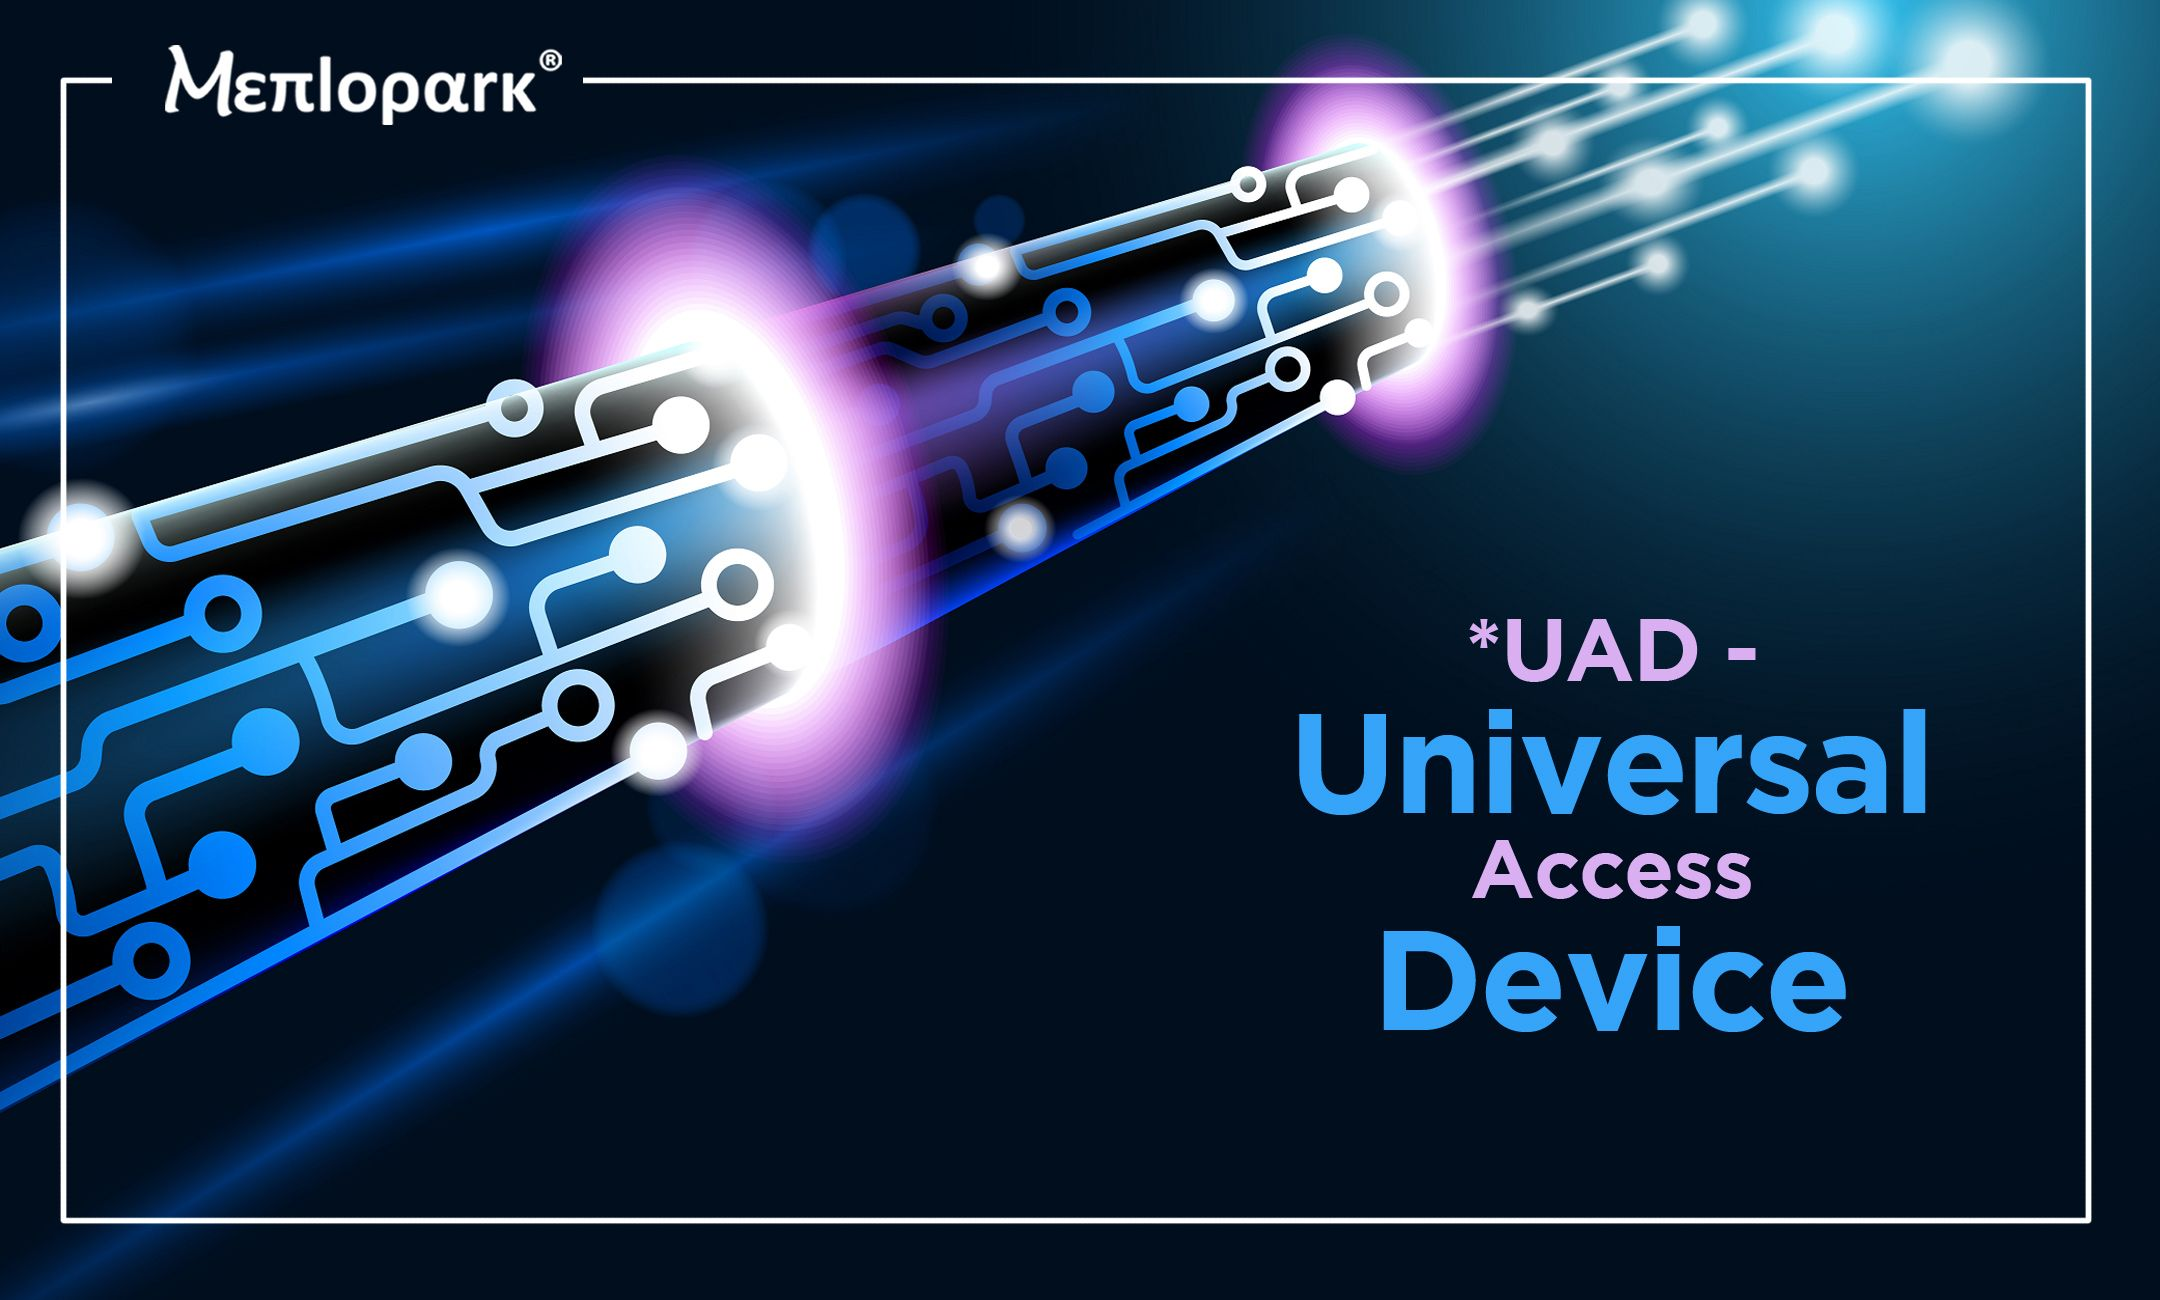 The Universalaccessdevice Offers 32 Bit Microcontrollers State